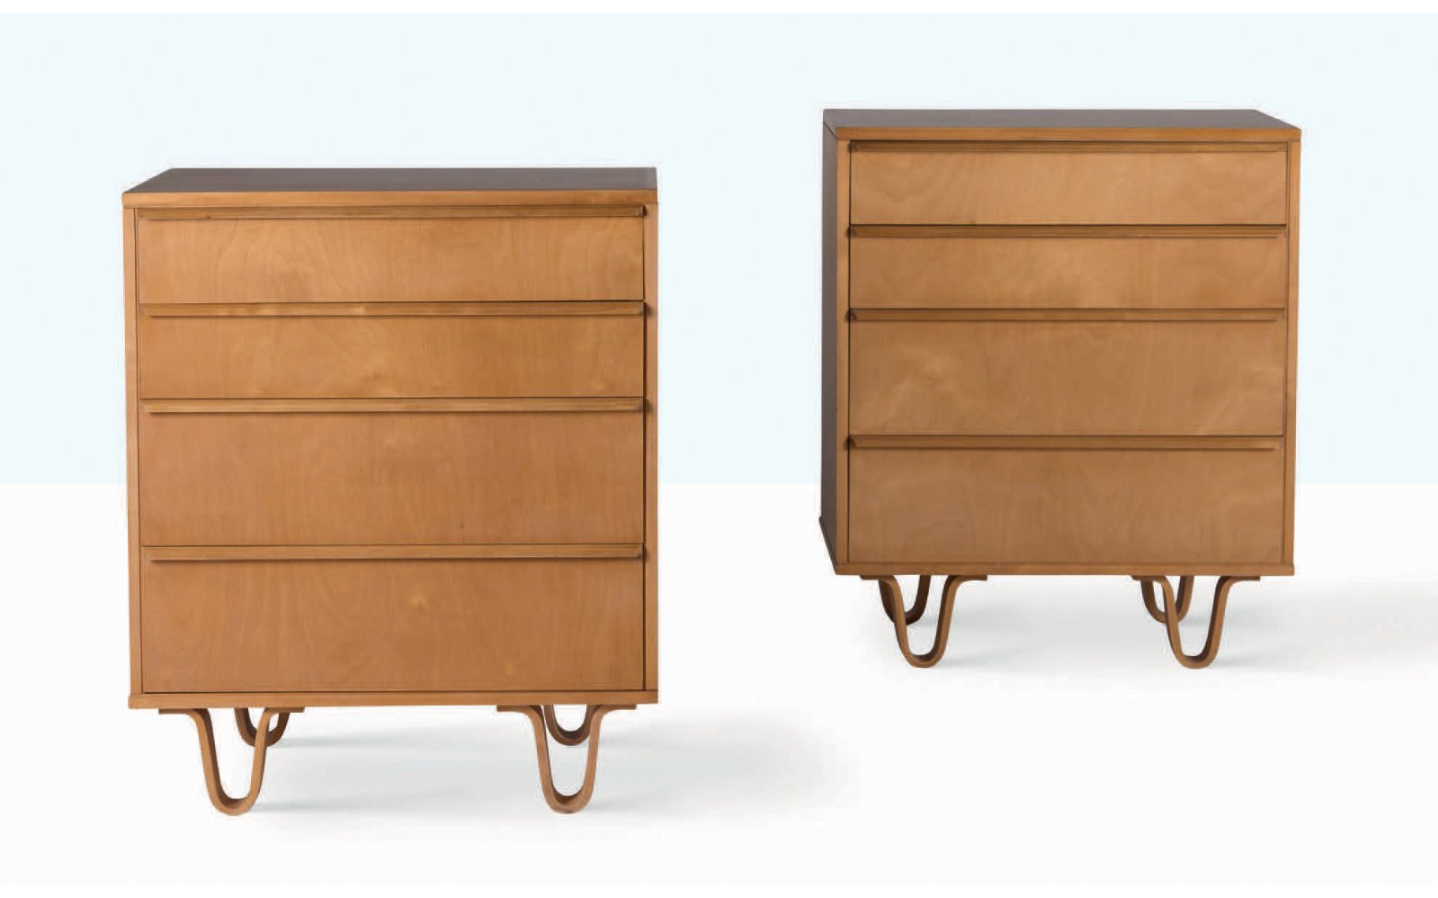 Cees Braakman, Pair of Chest of Drawers, Birch. Photo: Aguttes